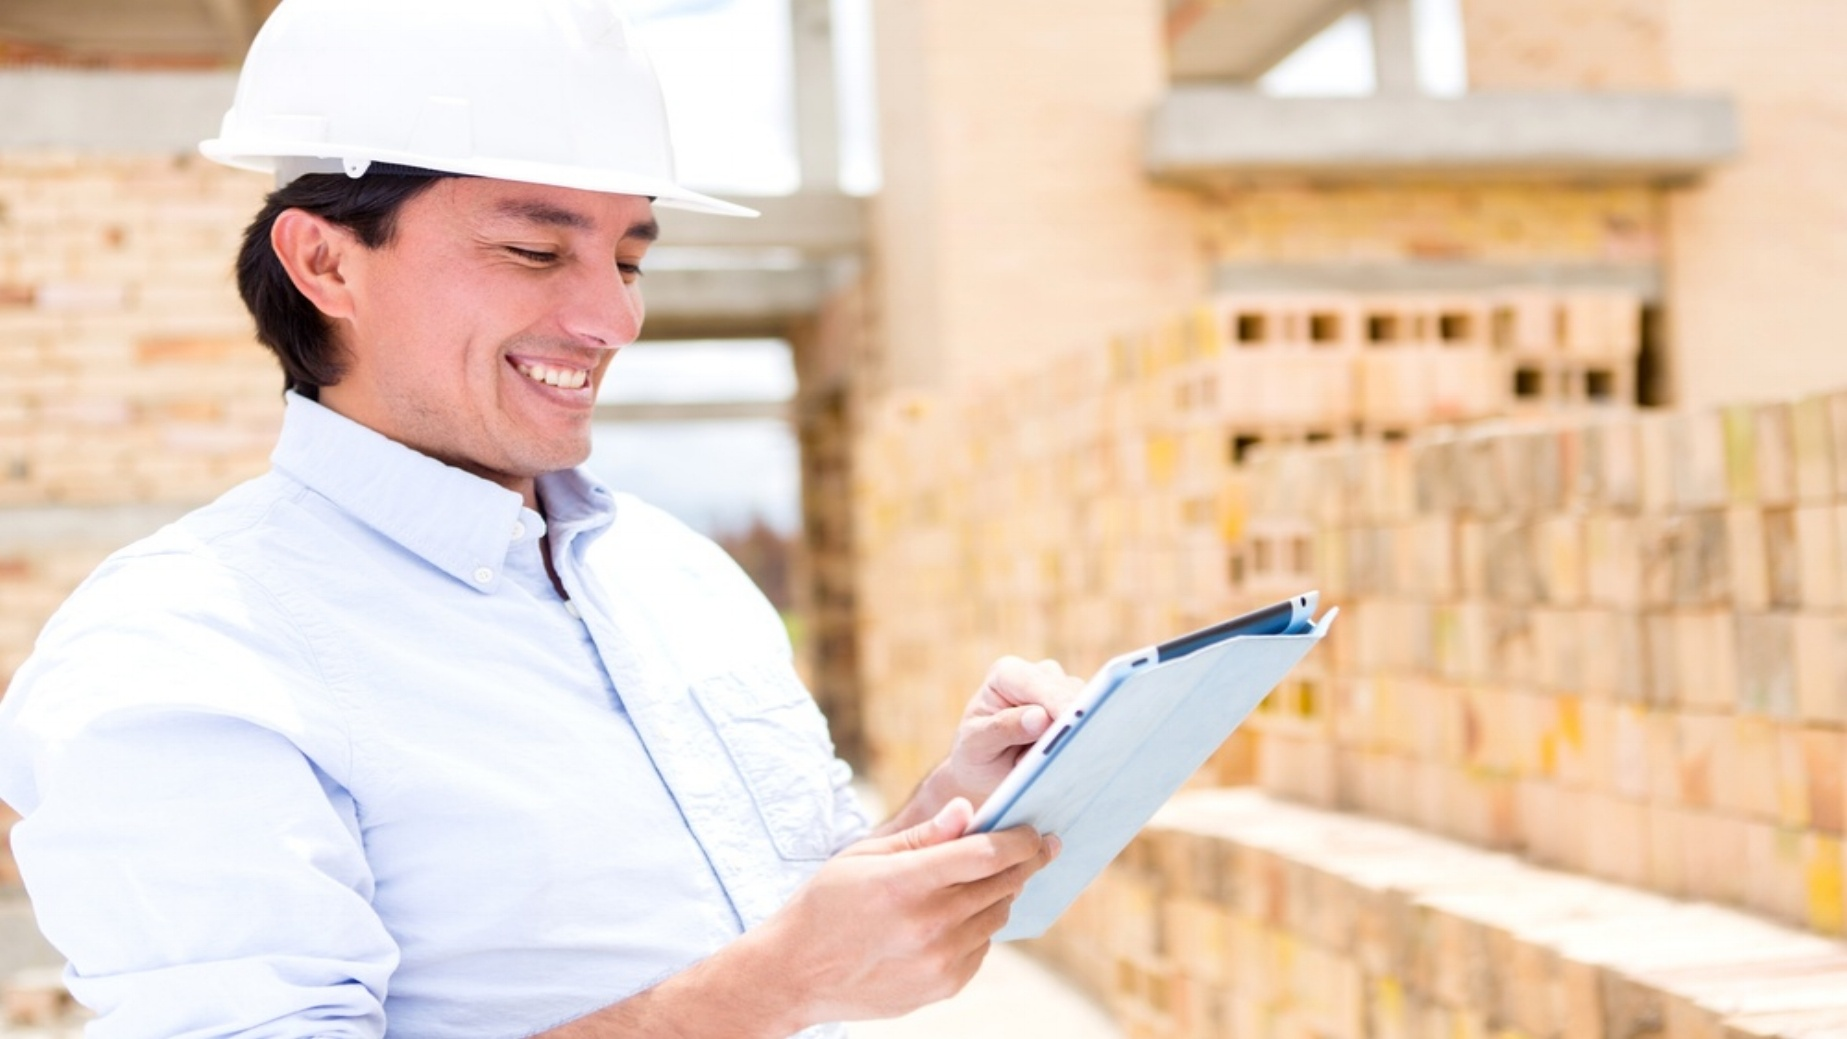 Civil engineer working with a tablet computer-887316-edited.jpeg